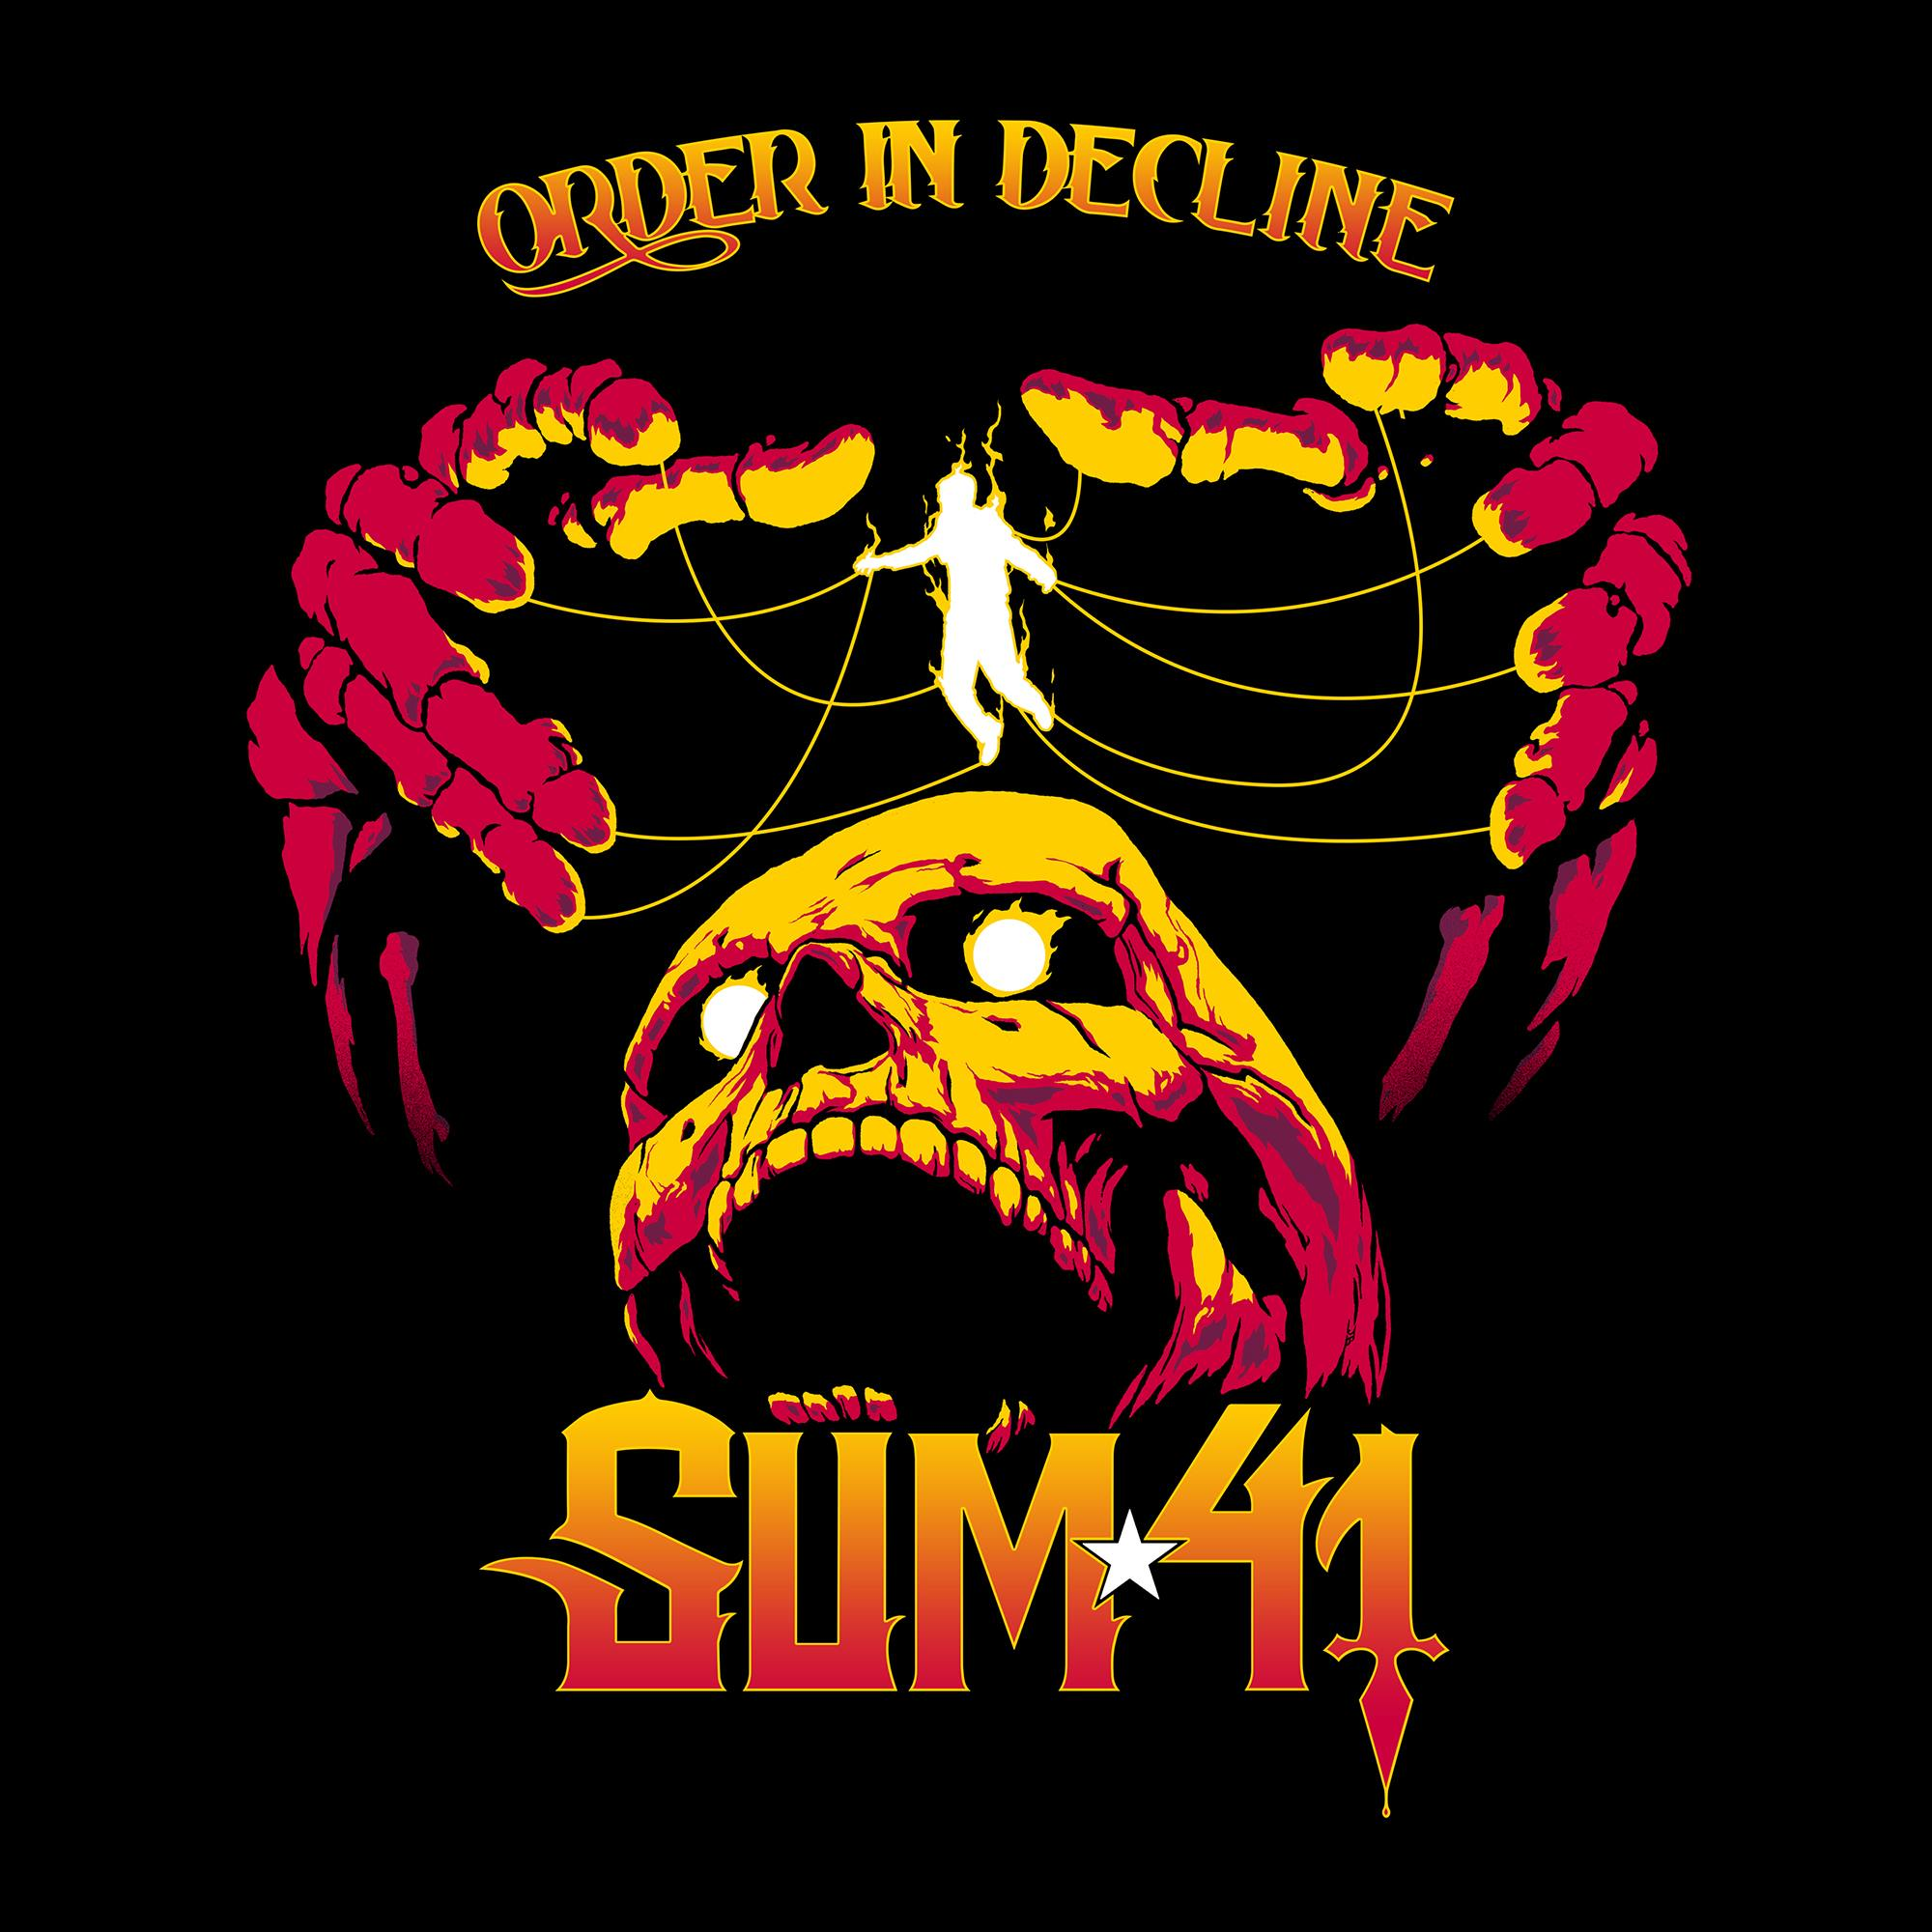 sum 41 order in decline cover